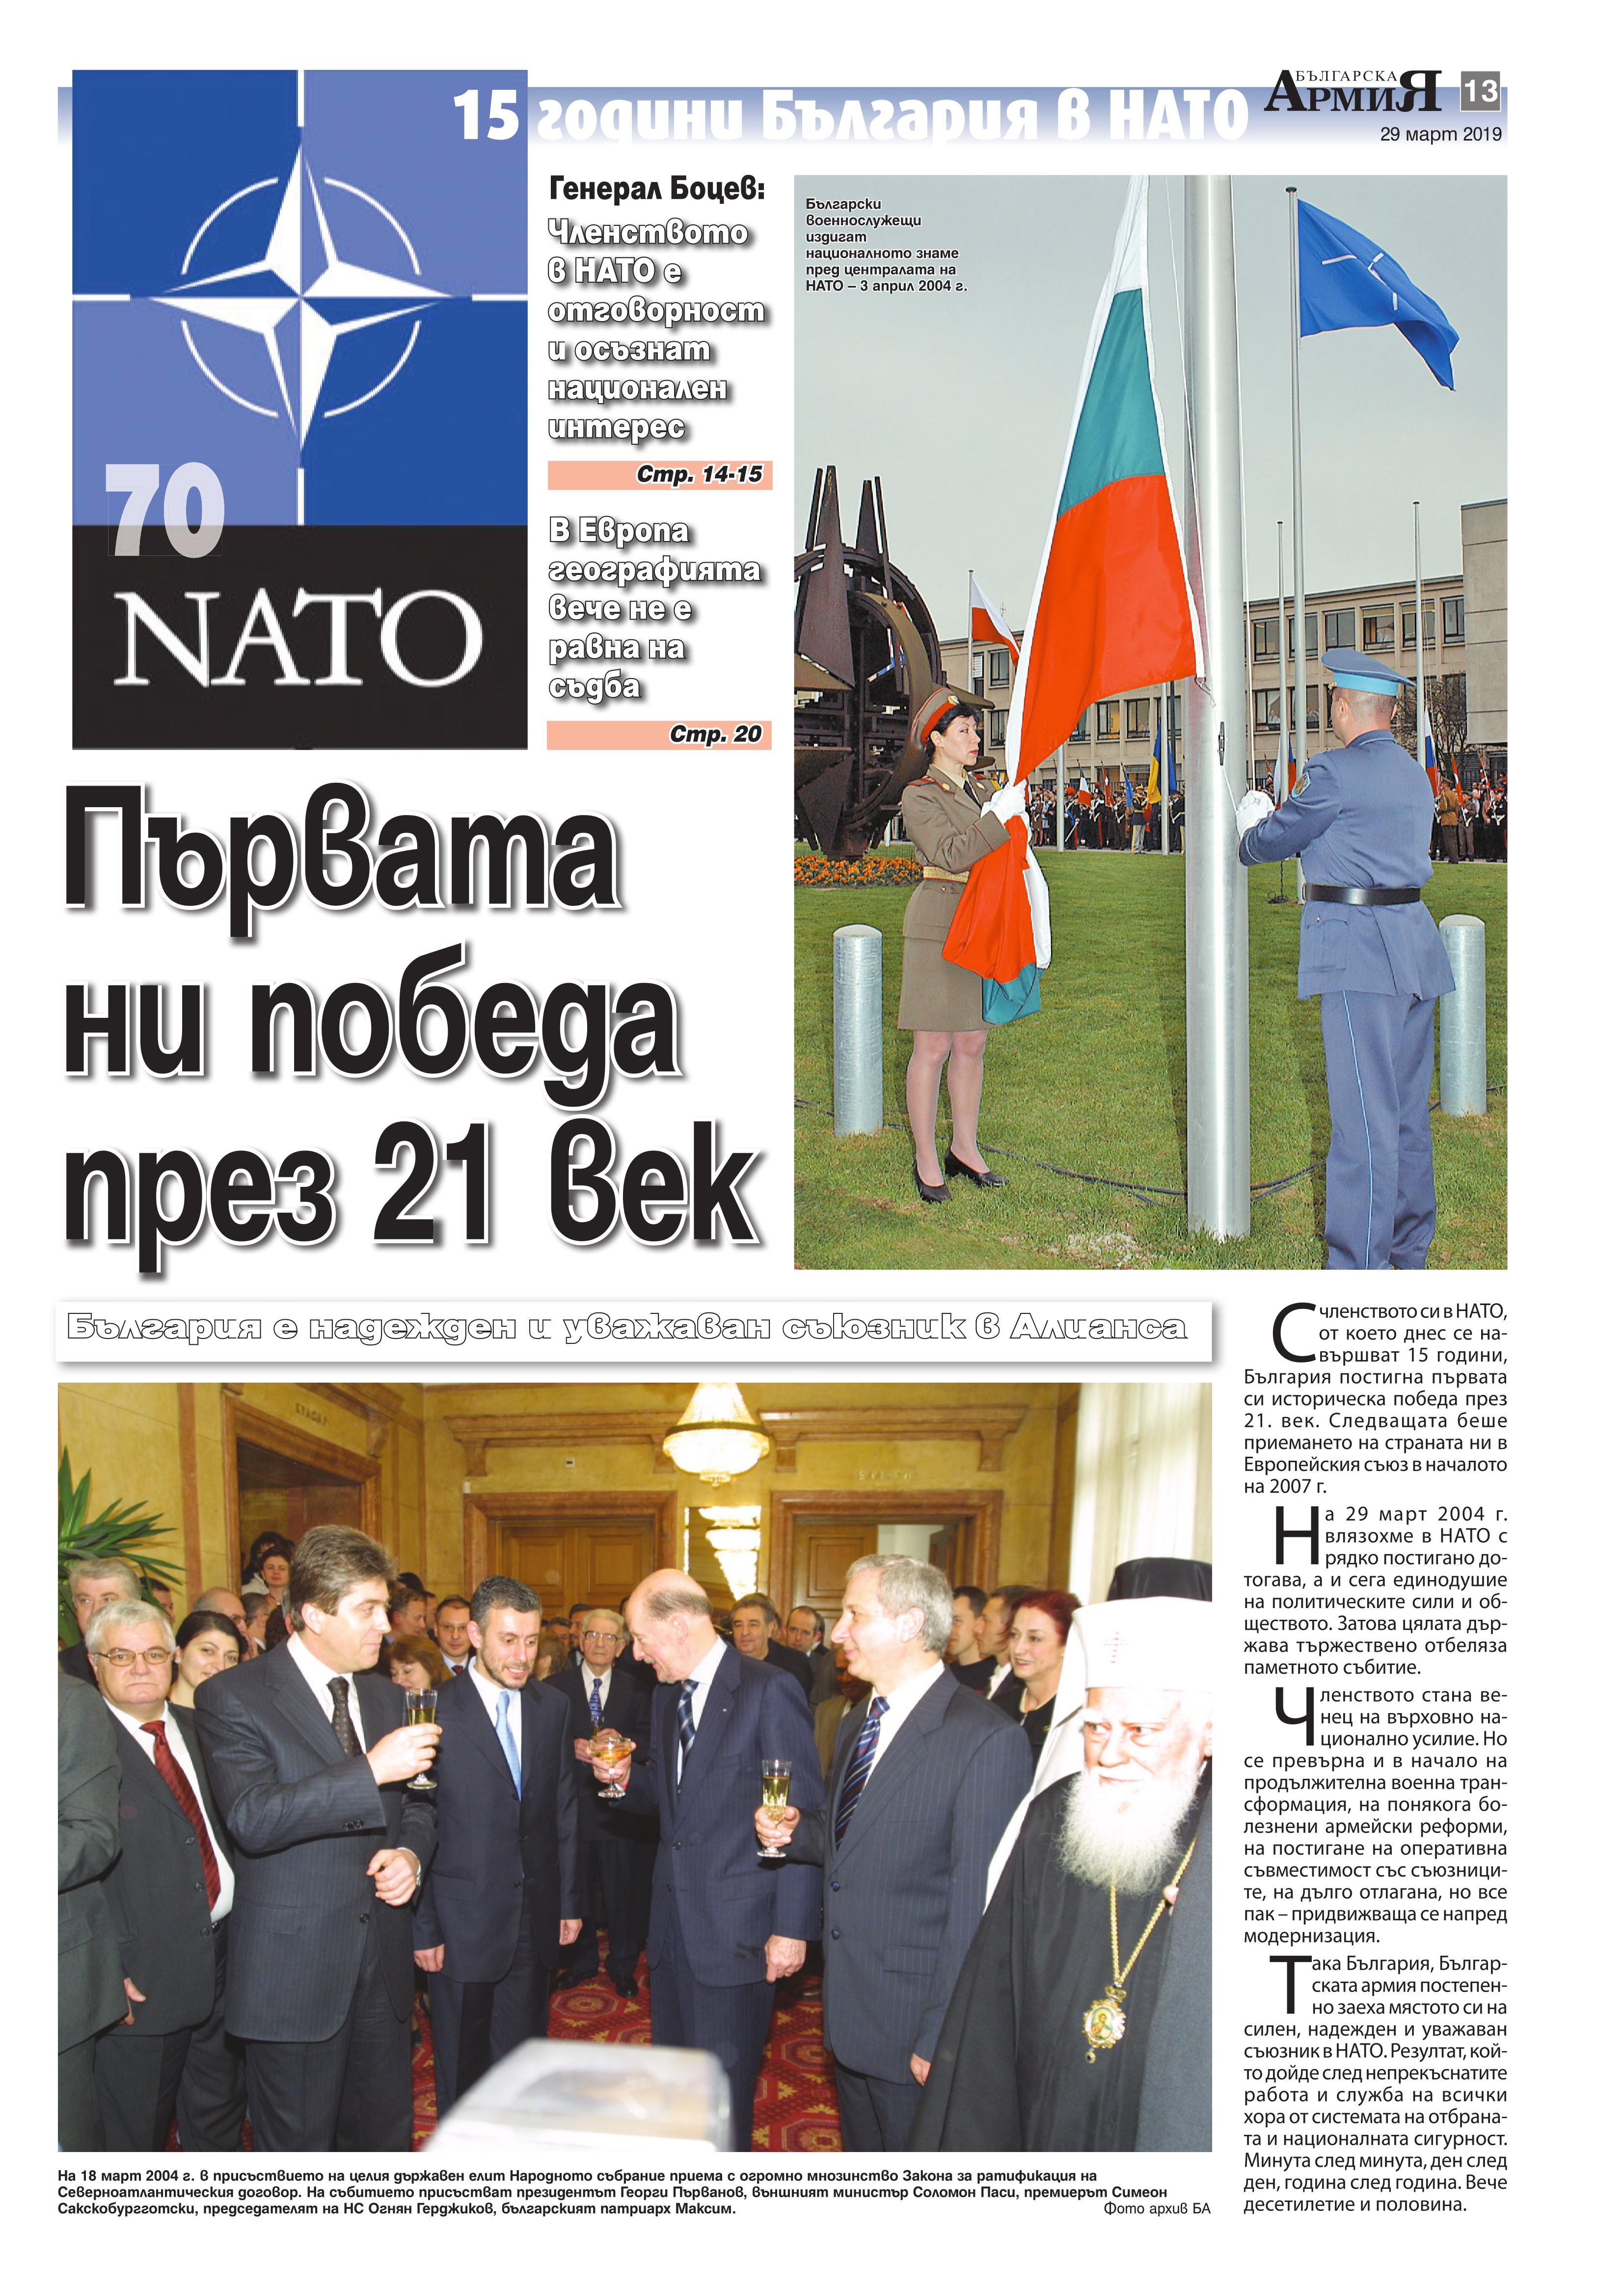 https://www.armymedia.bg/wp-content/uploads/2015/06/13.page1_-89.jpg